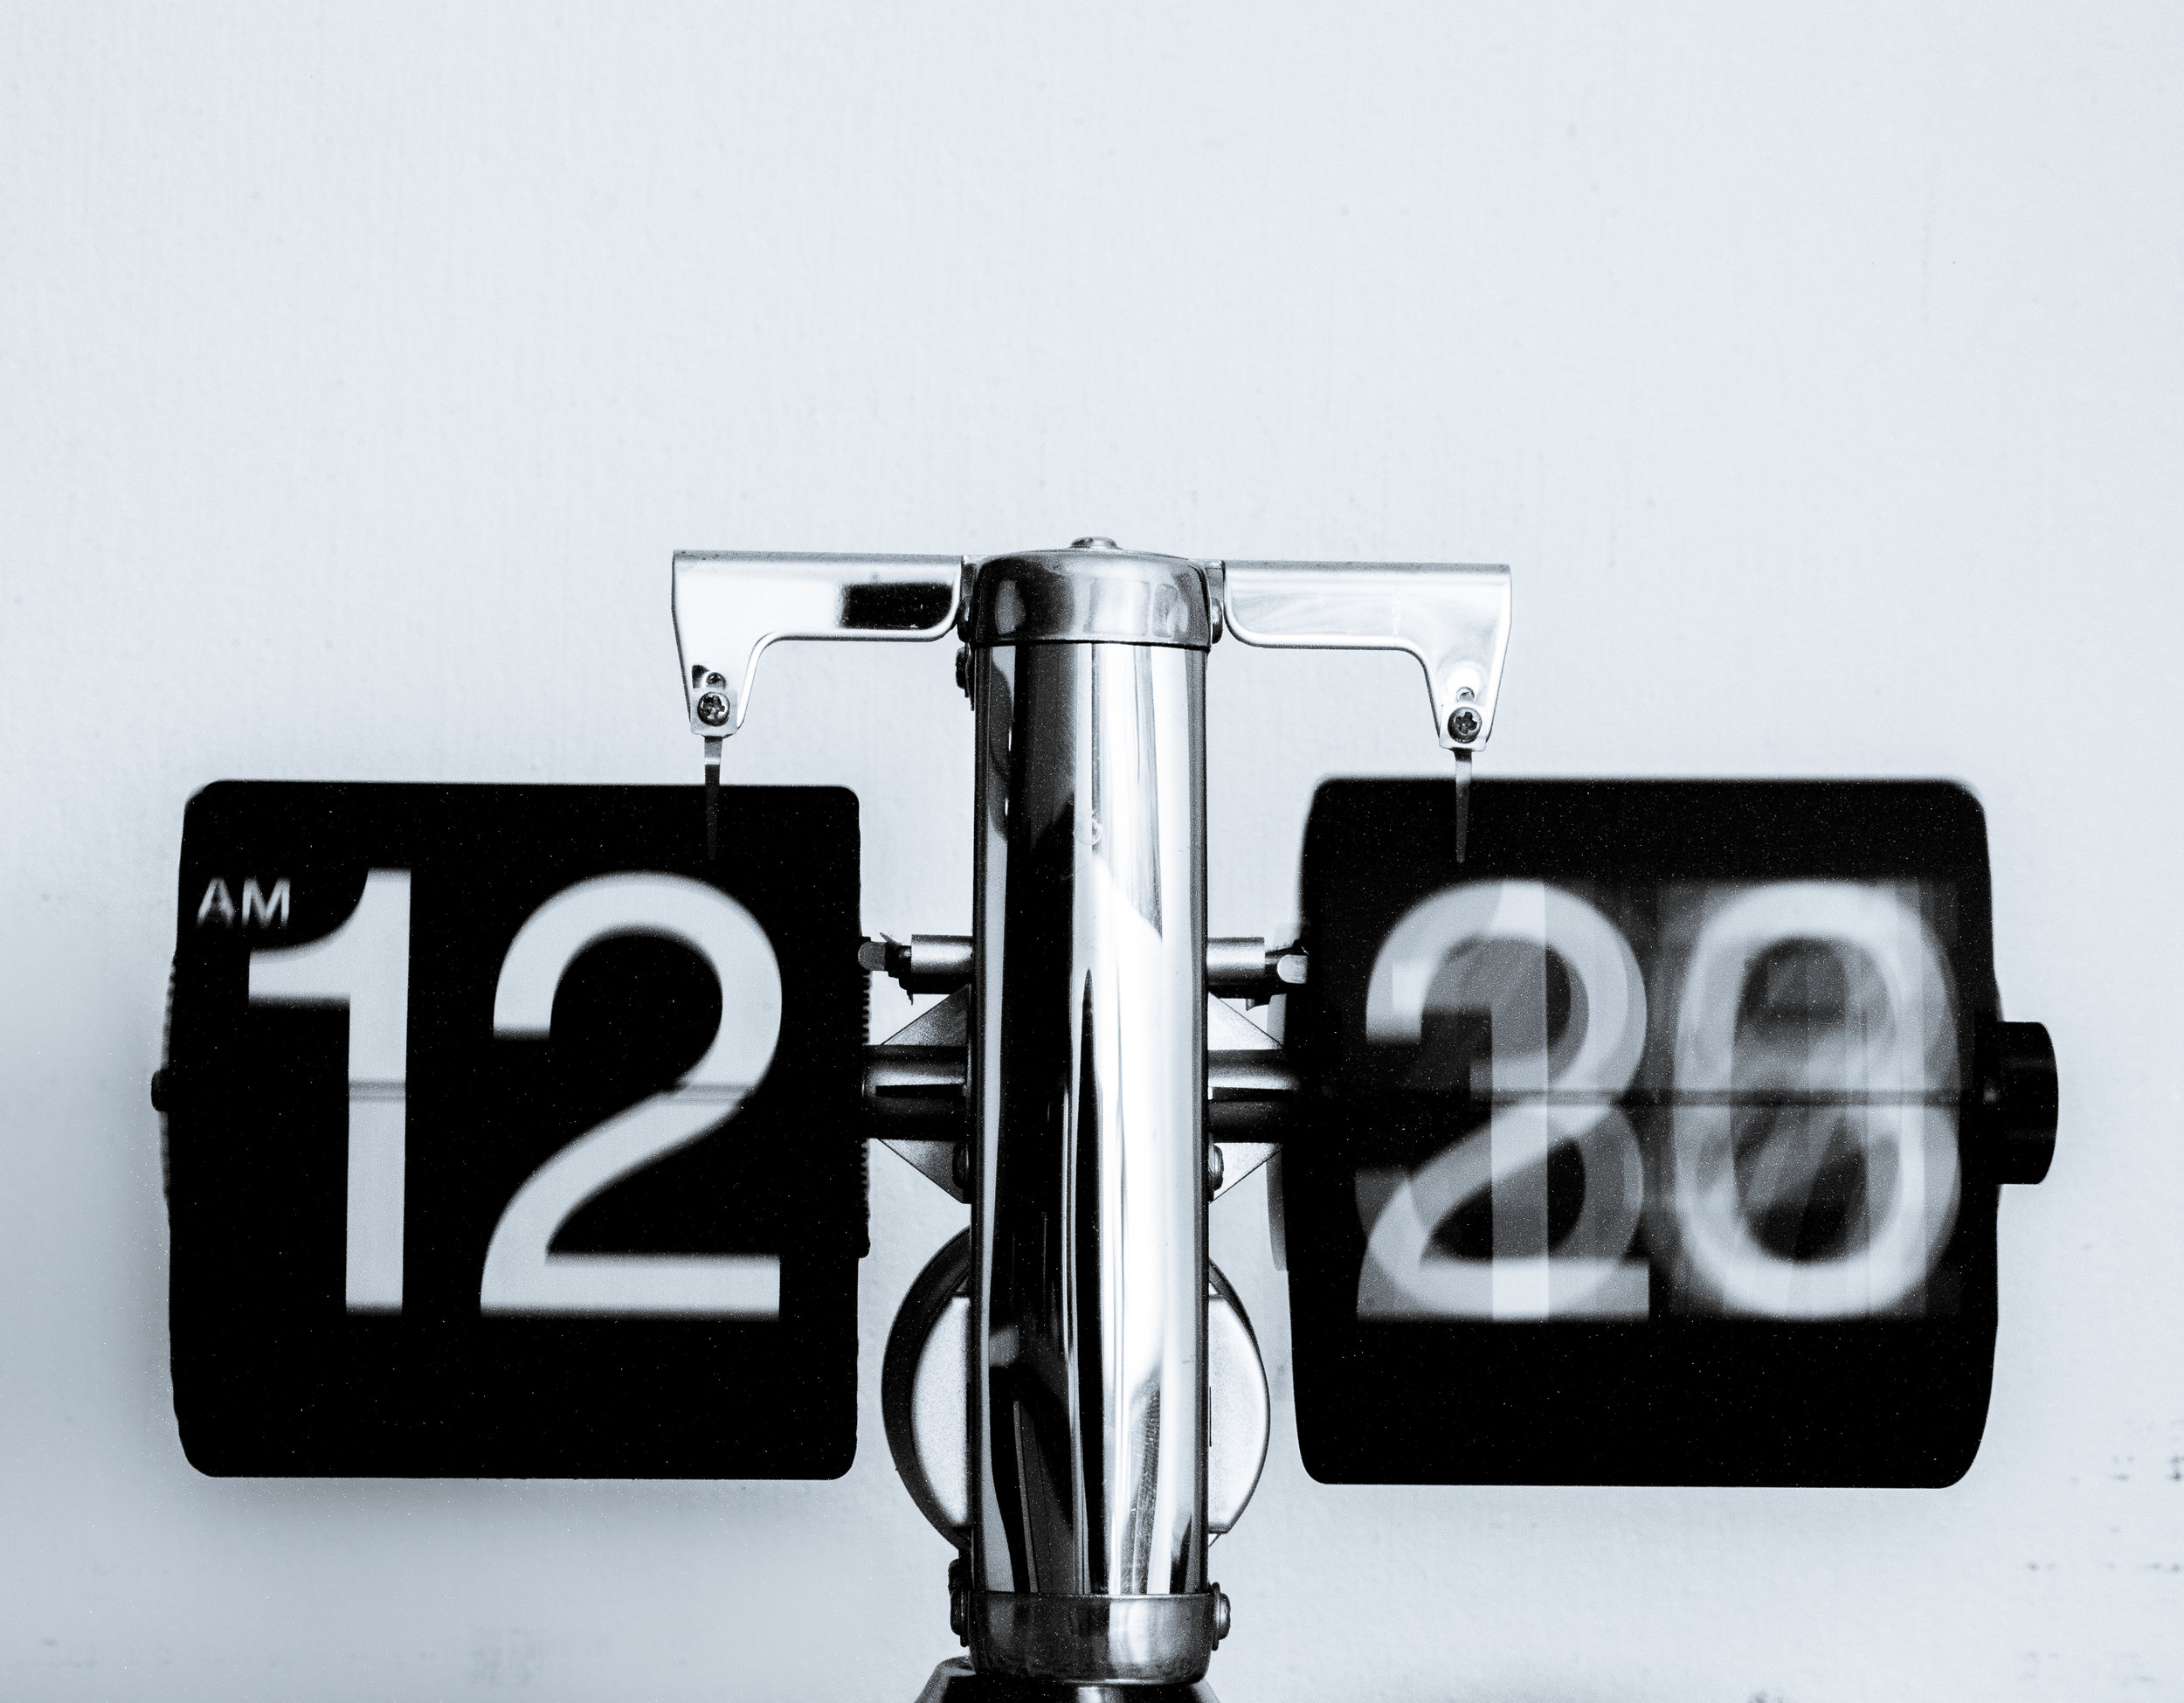 A clock with 12 am on one flip piece and a blurred number on the second.